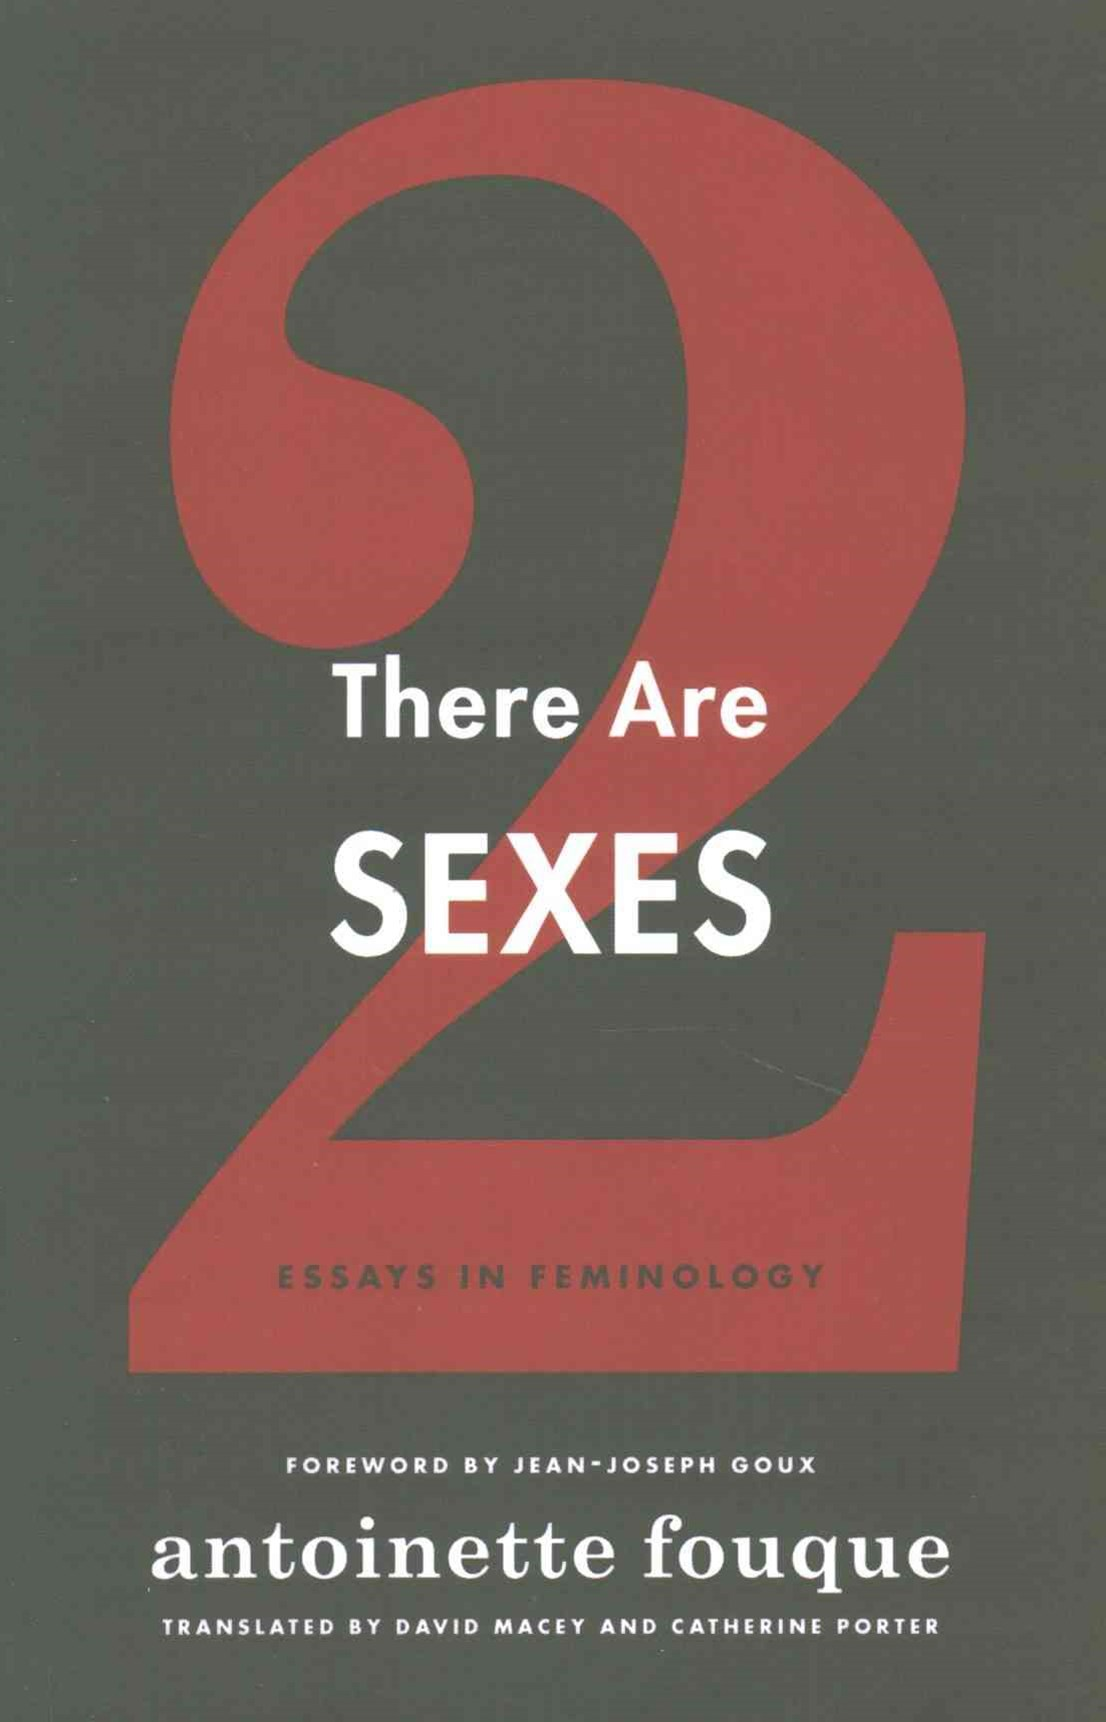 There are Two Sexes